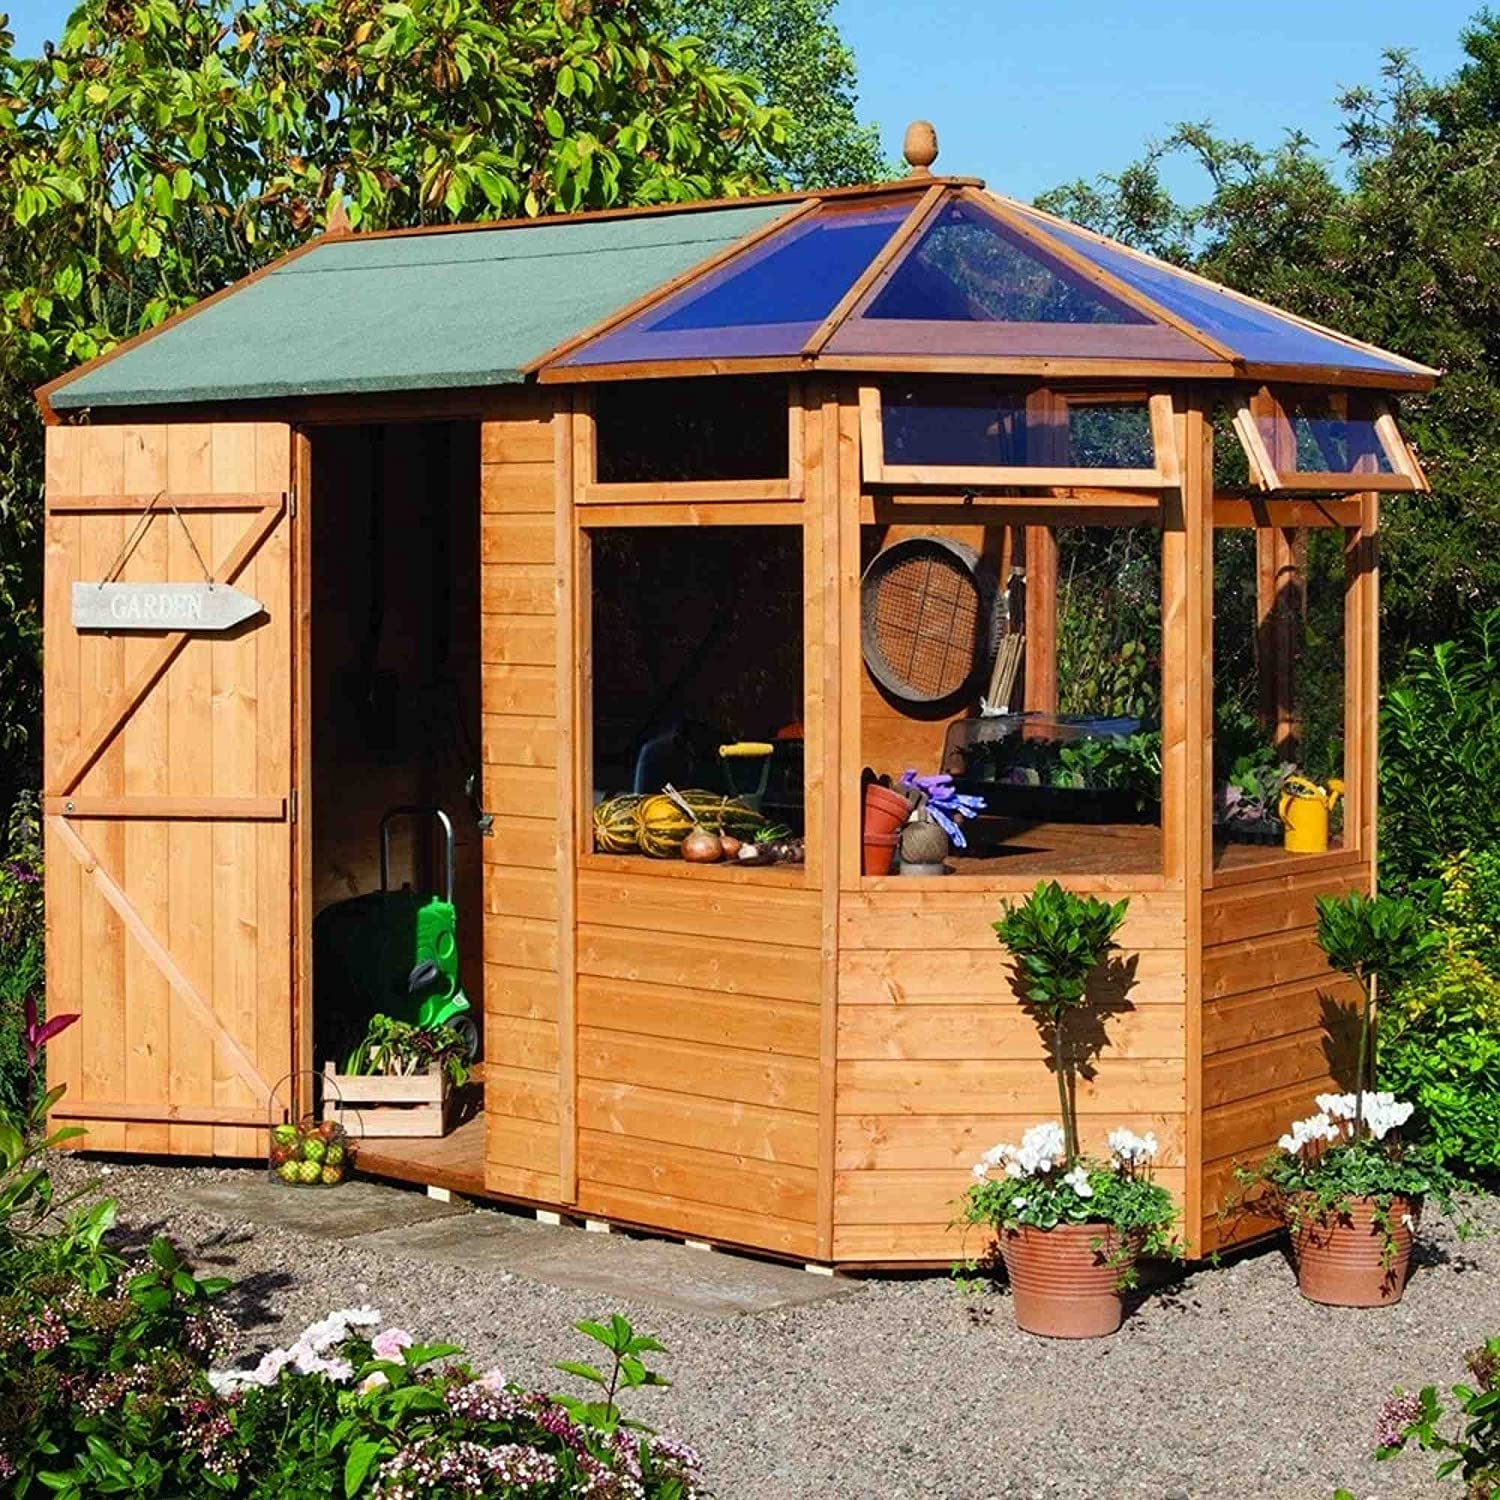 base pergola wooden rustic home the storage of sheds wood lawsonreport roof garden shed image inspirations made potting ideas cedar custom diy dome plans